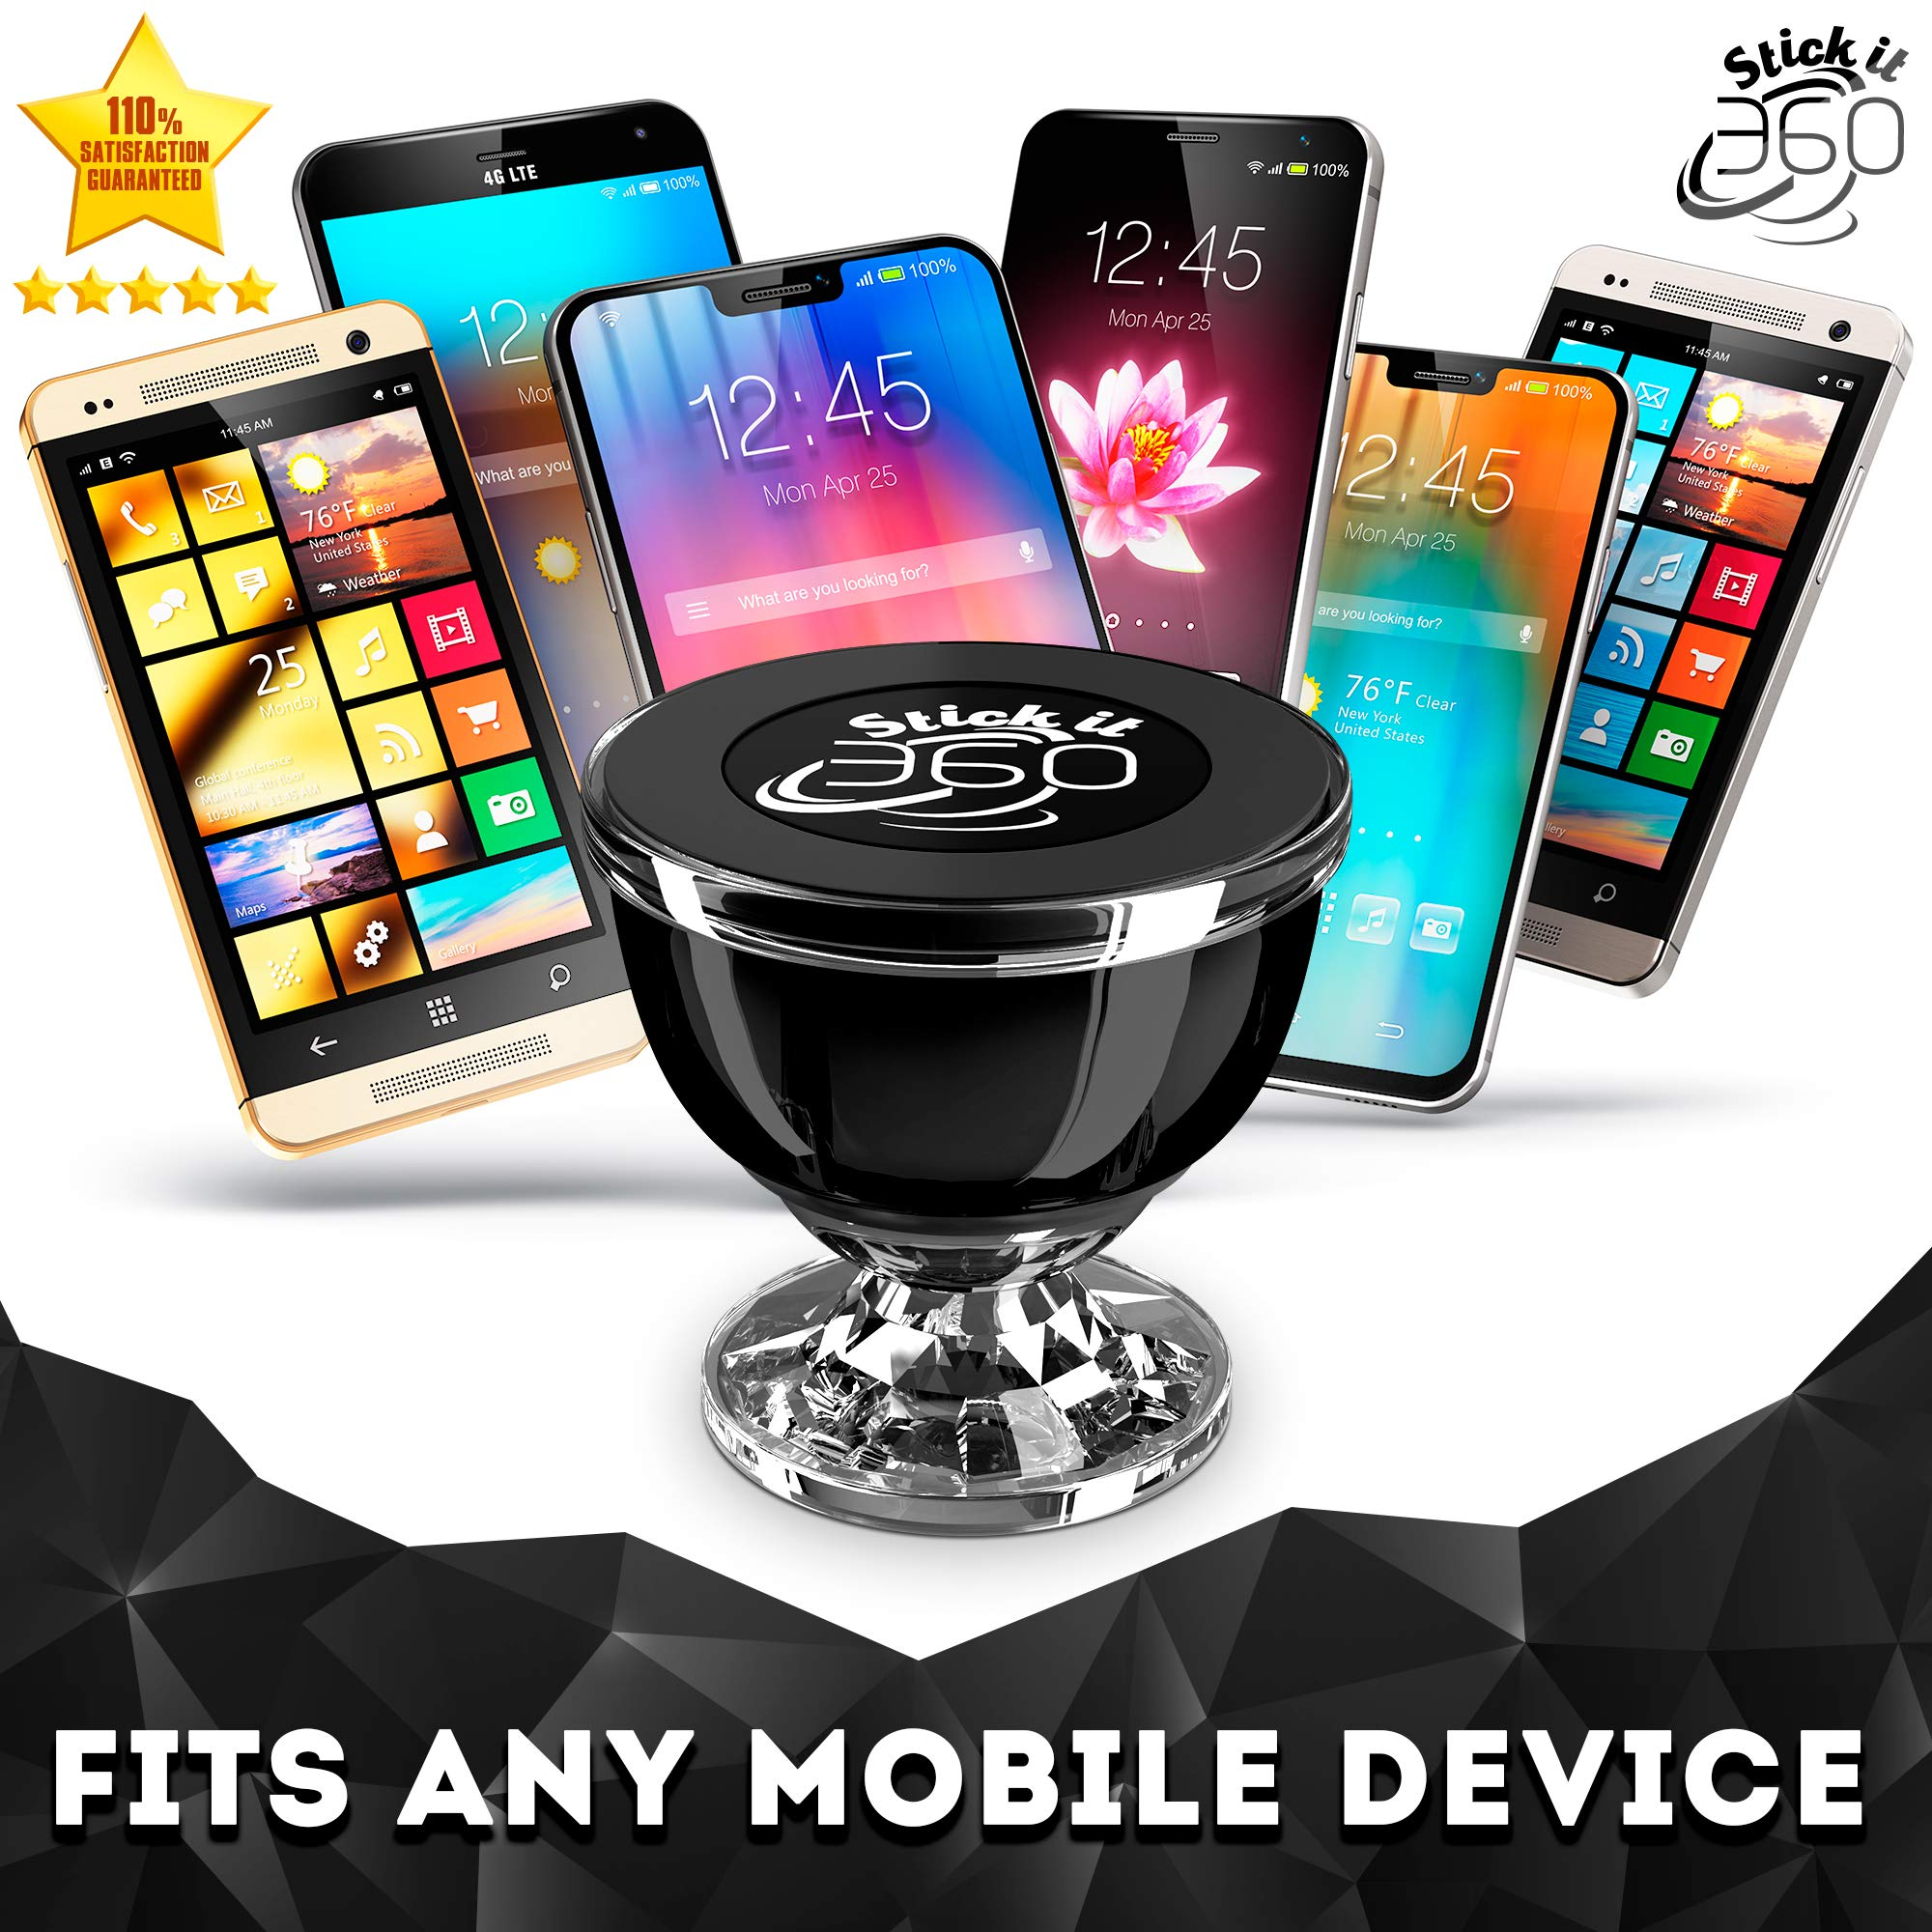 Universal Cell Phone Holder for Car, Magnetic Car Phone Mount 360 Rotation from Dashboard, 6 Strong Mobile Friendly Neo Magnets 21600 Gauss, Compatible with All Smartphones by Stick it 360 (Black)